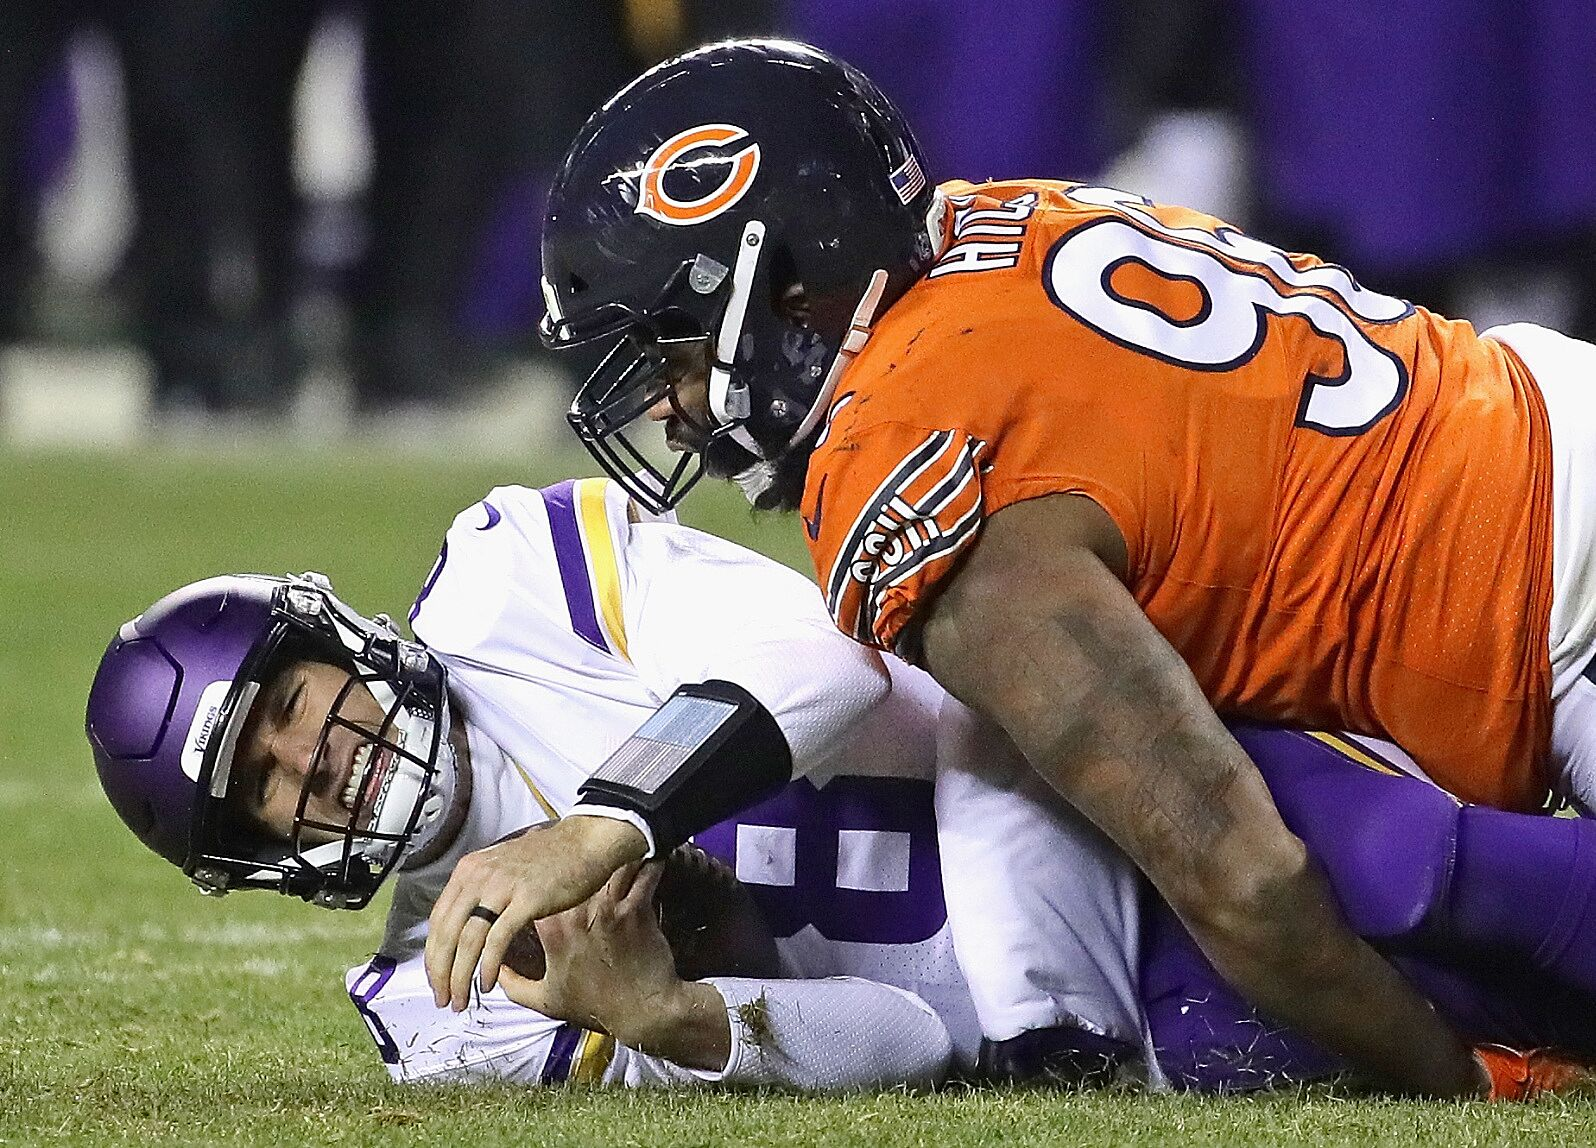 finest selection 7d61e 956ae Chicago Bears: 5 Reasons why they can make a long playoff run